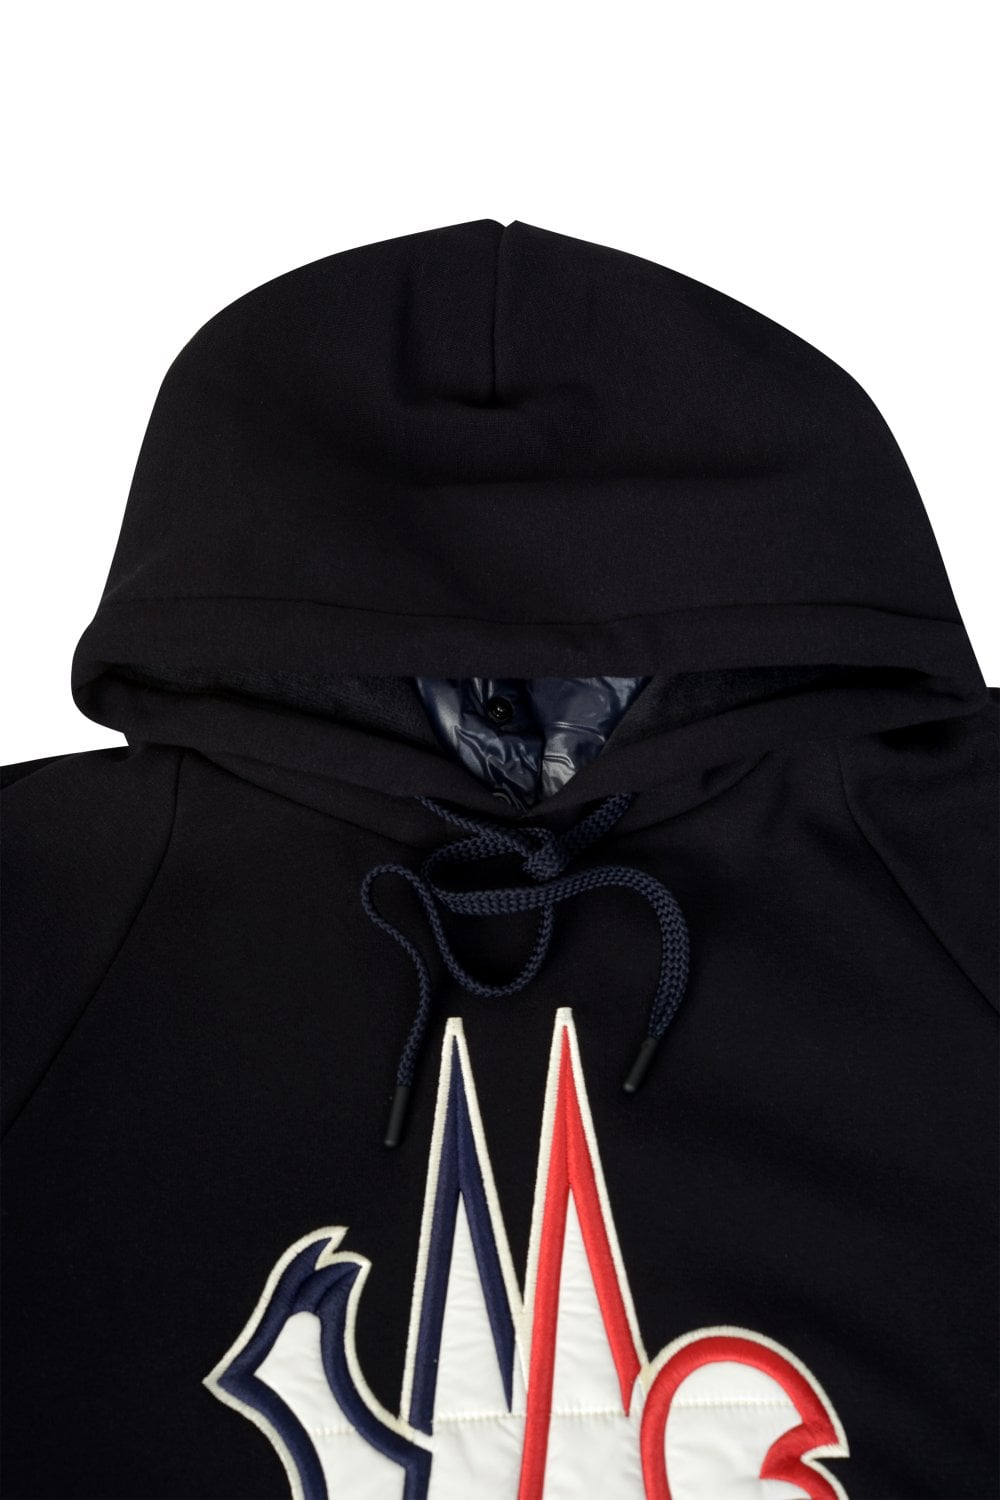 27834064925f MONCLER Moncler Grenoble Oversized Logo Hooded Sweatshirt - Clothing ...